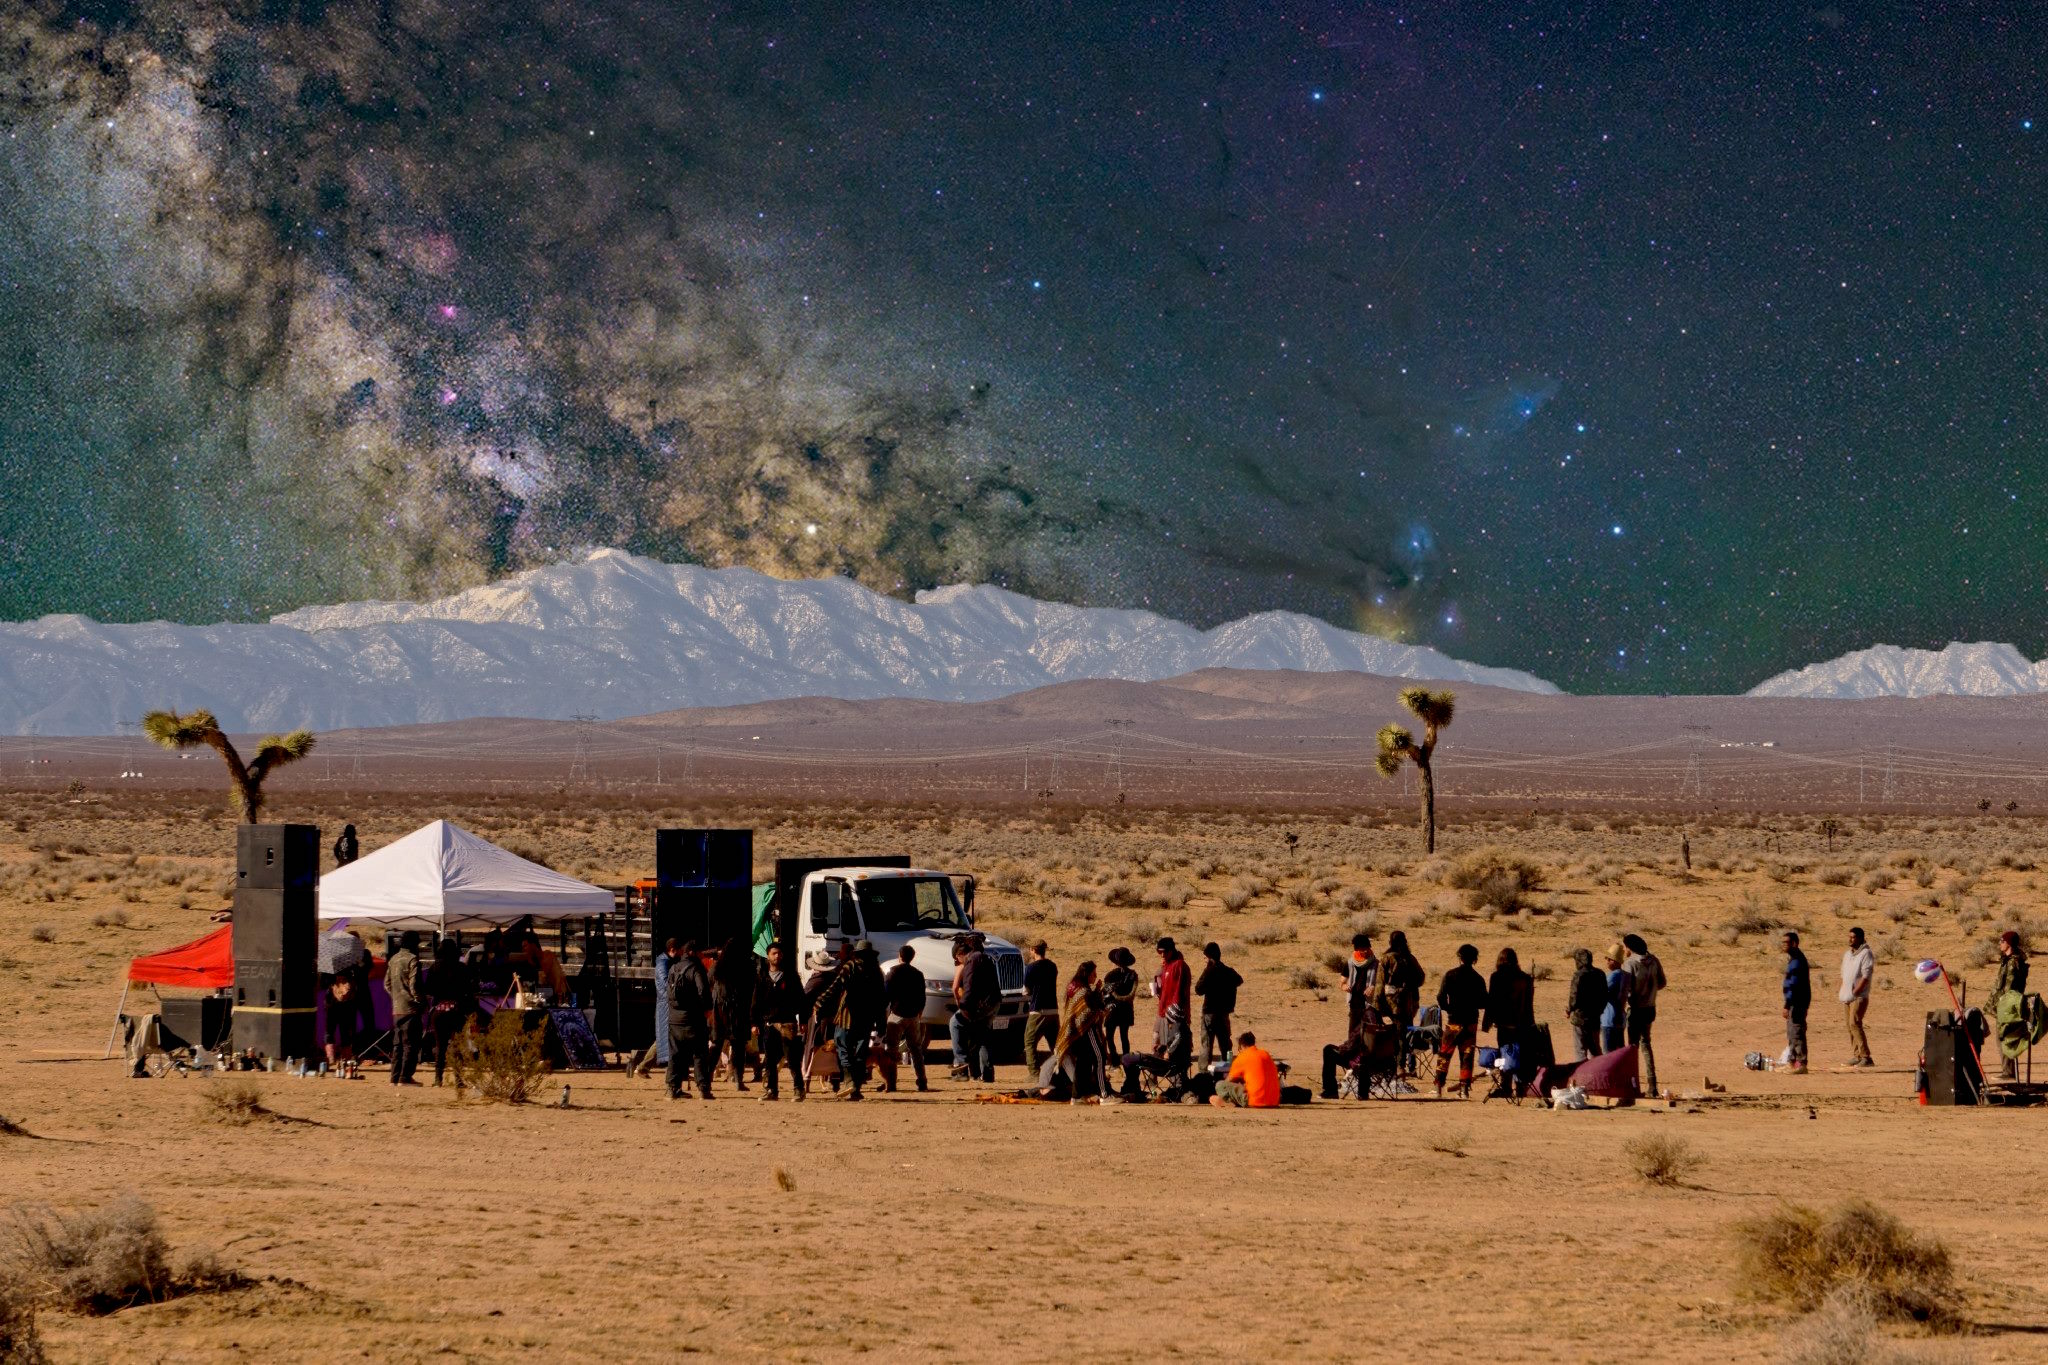 LUNALIMINAL: A Collaboration Event Between Xexify and MIstress of Evil! 3-21-2020 in the Mojave desert